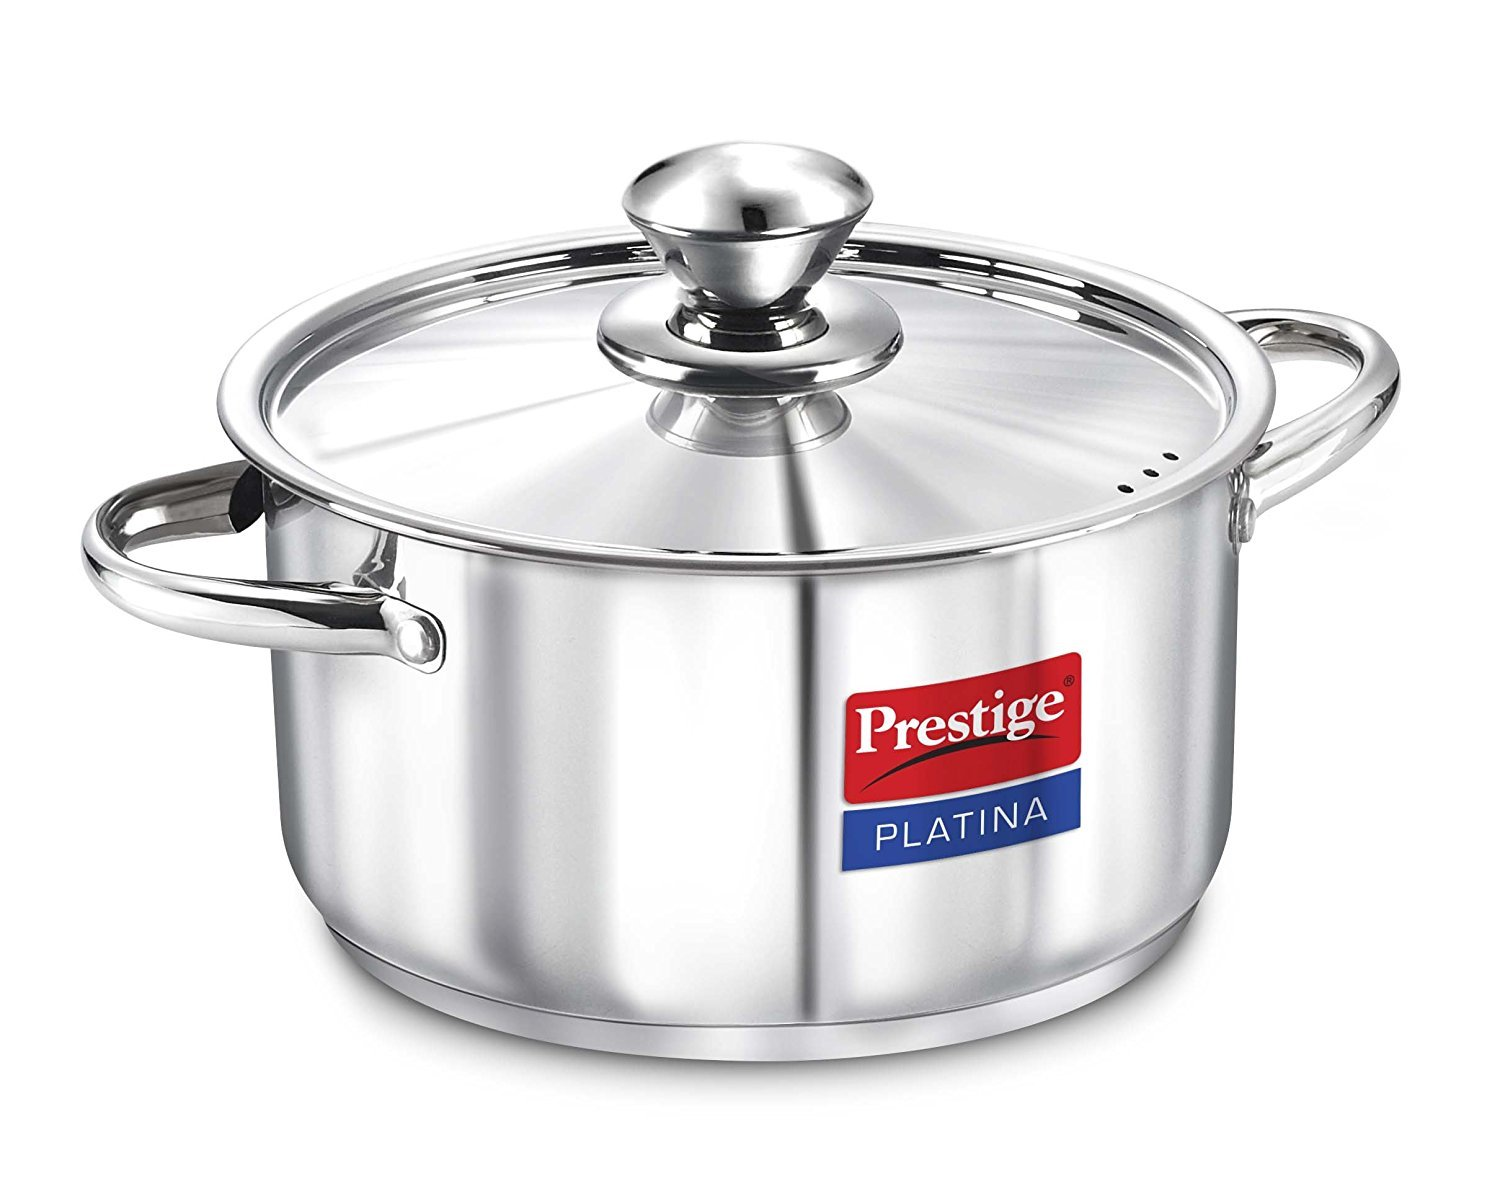 Prestige 36508 - 7 Litre Platina Casserole with lid (Induction Base, Stainless Steel)